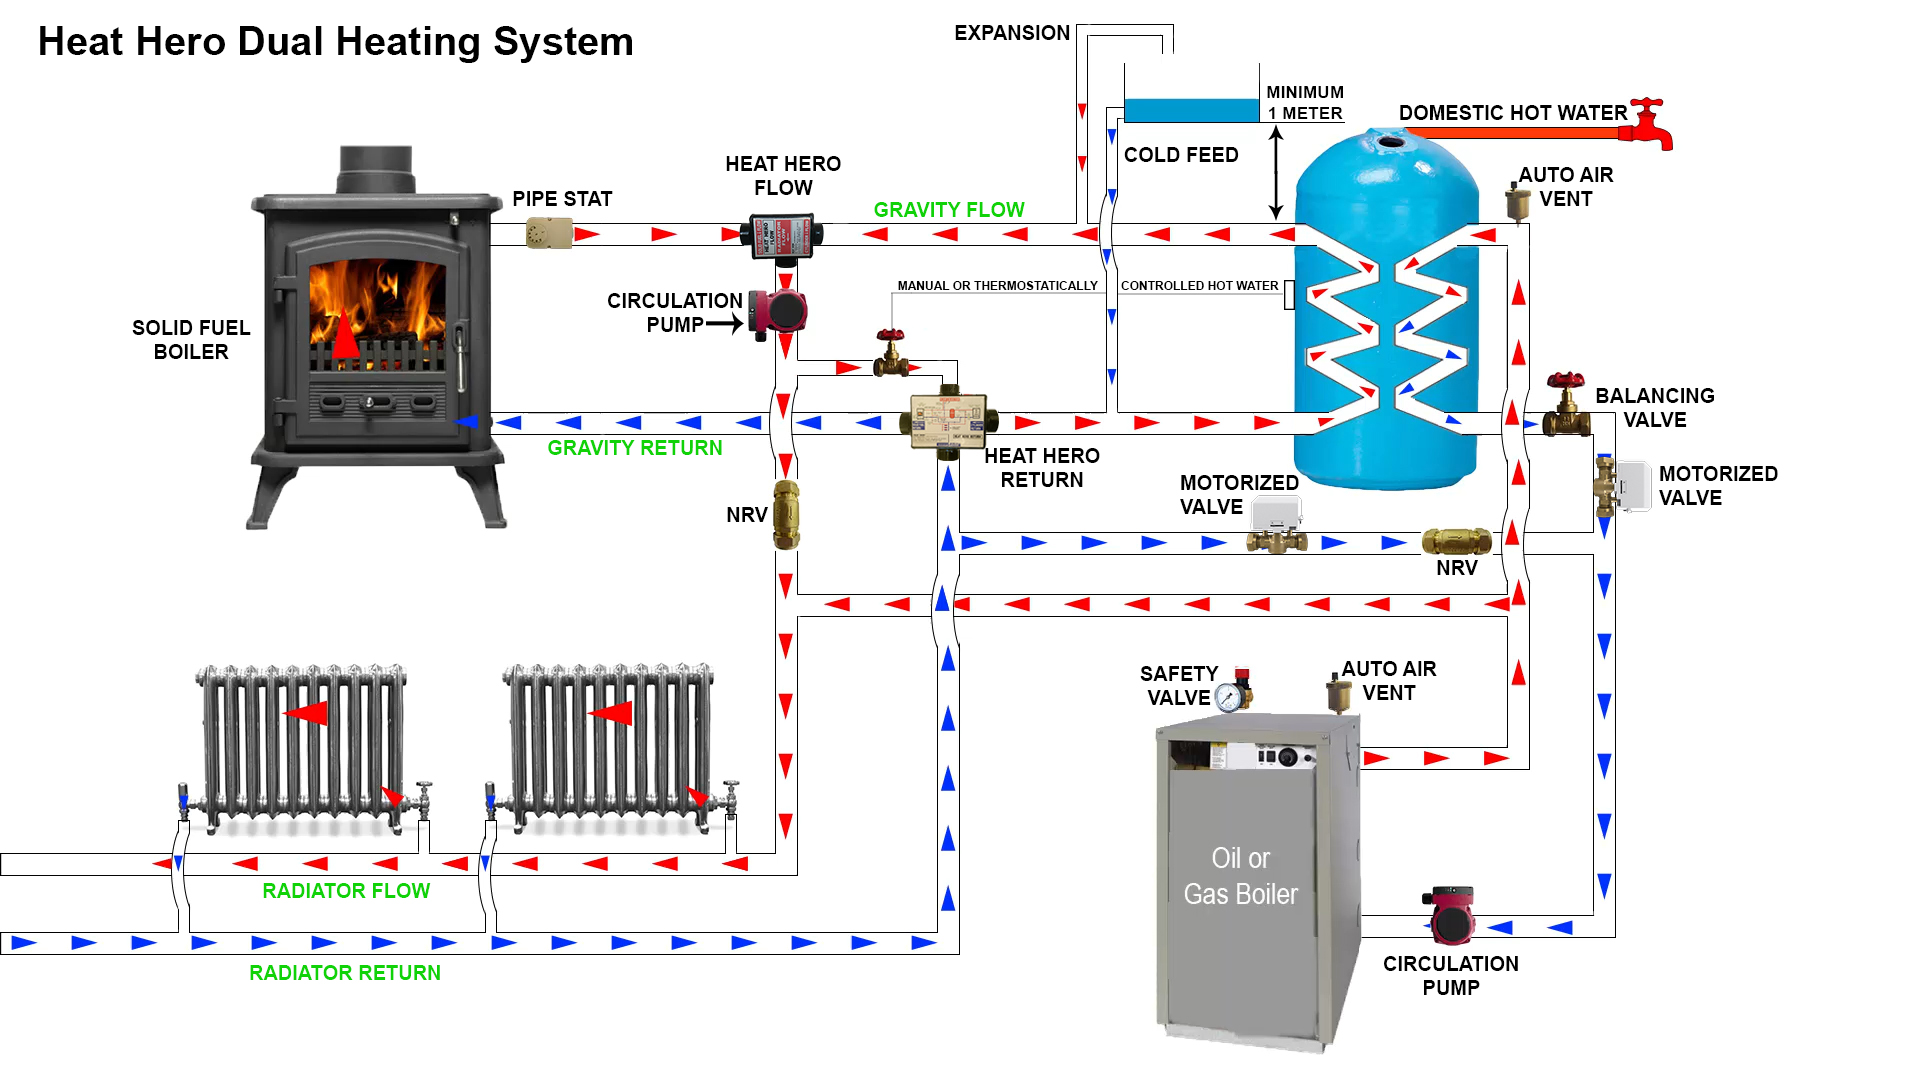 central heating wiring diagram gravity hot water how to wire 3 light switches in one box for pumped system diagramwiring